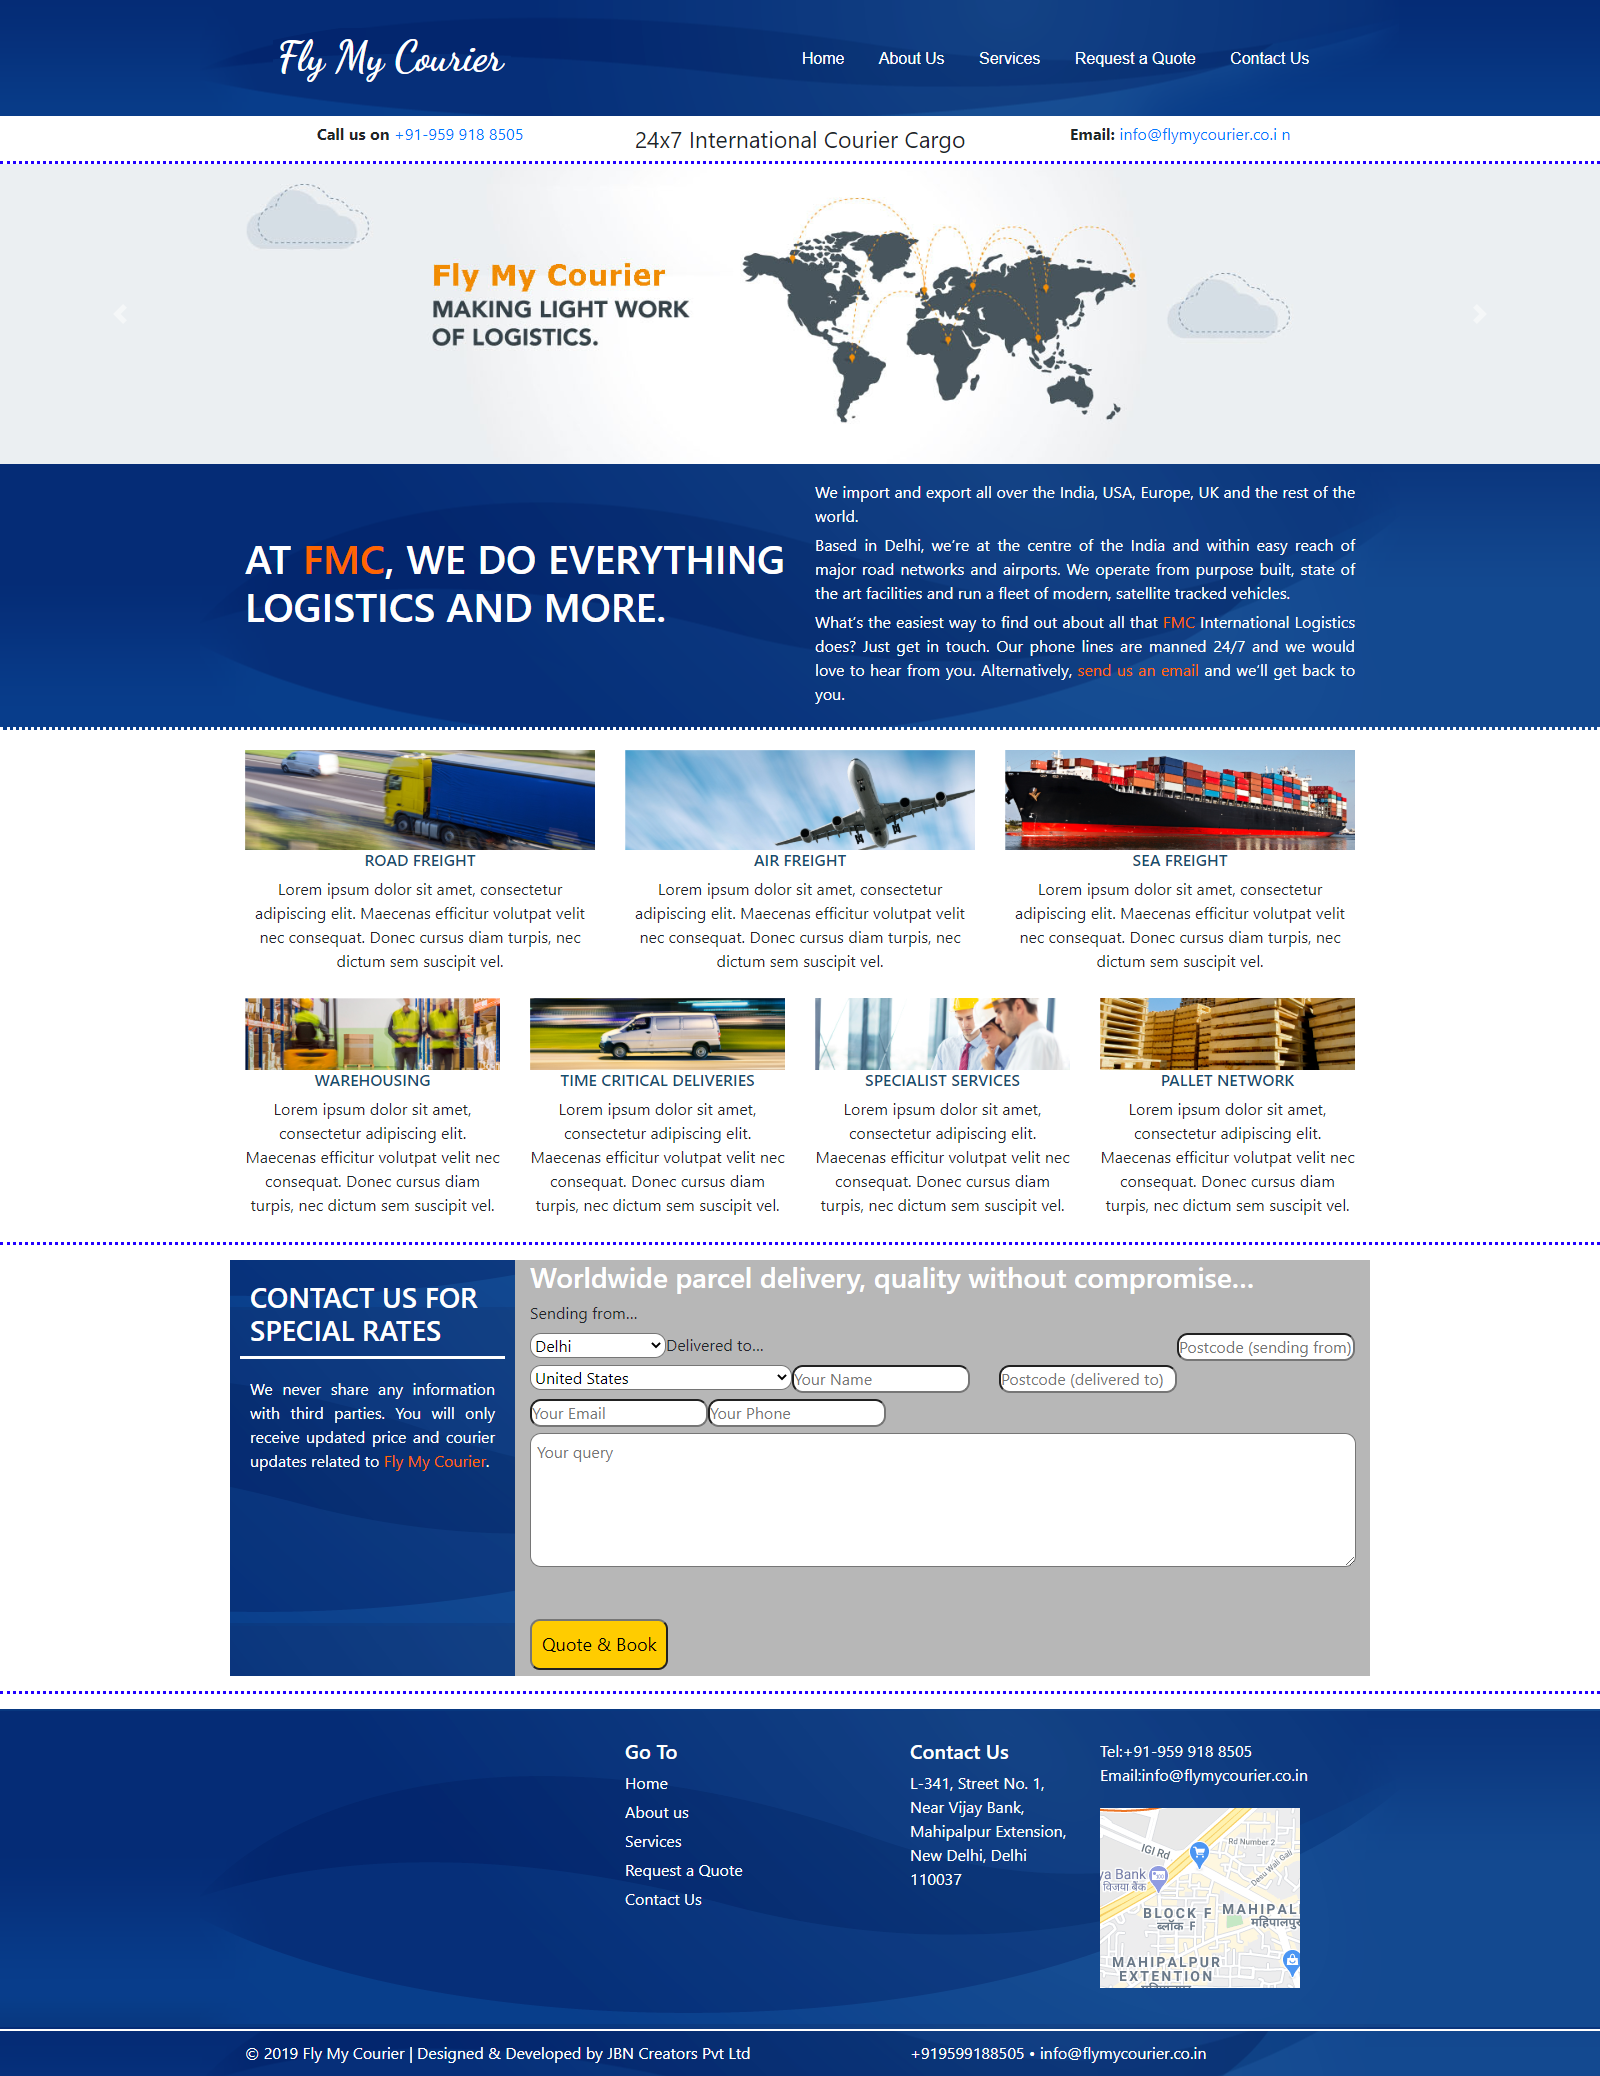 screencapture-www-flymycourier-co-in-international_courier_cargo_booking-php-1594796139389